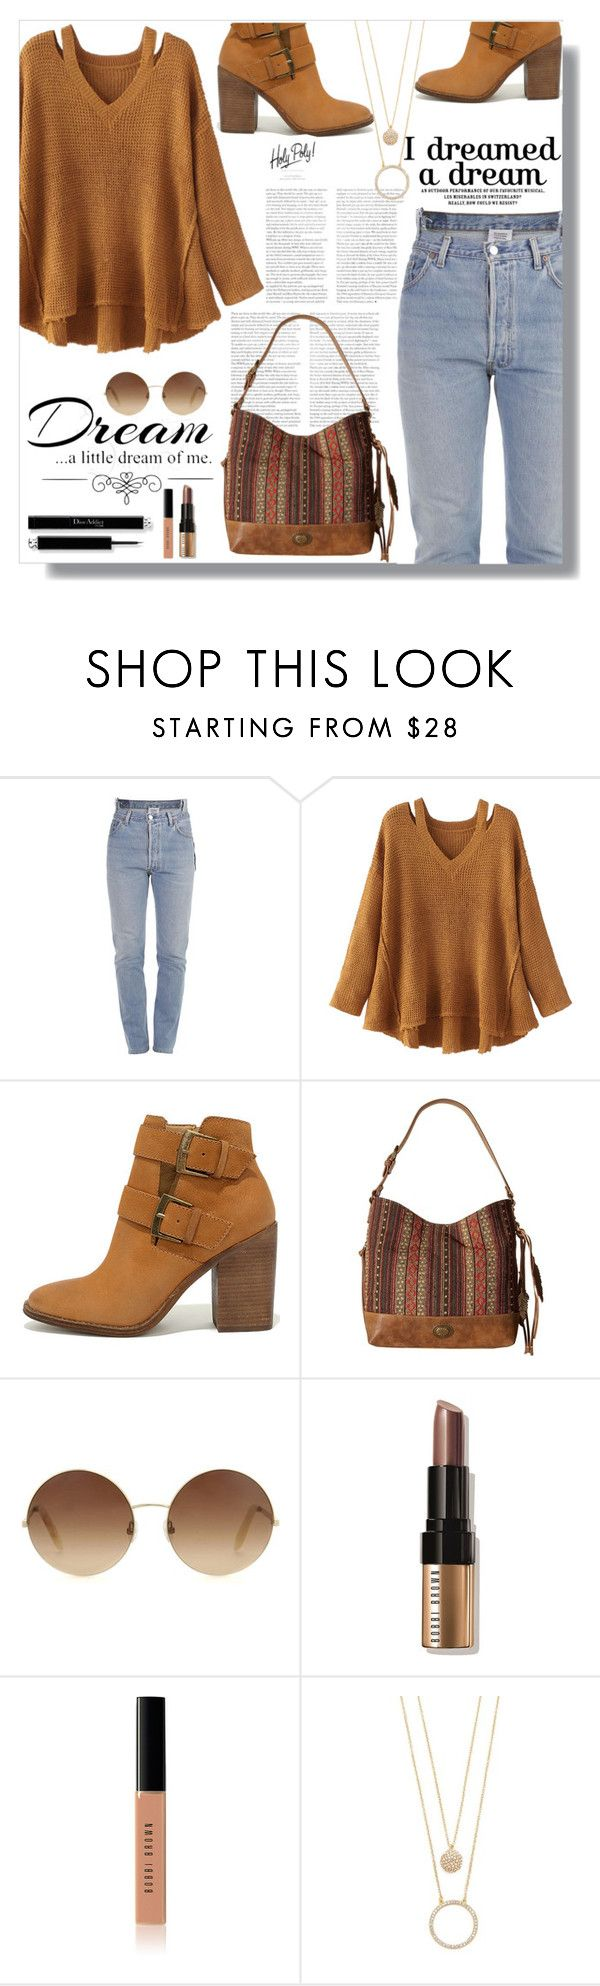 """""""Dream"""" by kris-e ❤ liked on Polyvore featuring Vetements, WithChic, Steve Madden, American West, Victoria Beckham, Love Quotes Scarves, Bobbi Brown Cosmetics and Kate Spade"""